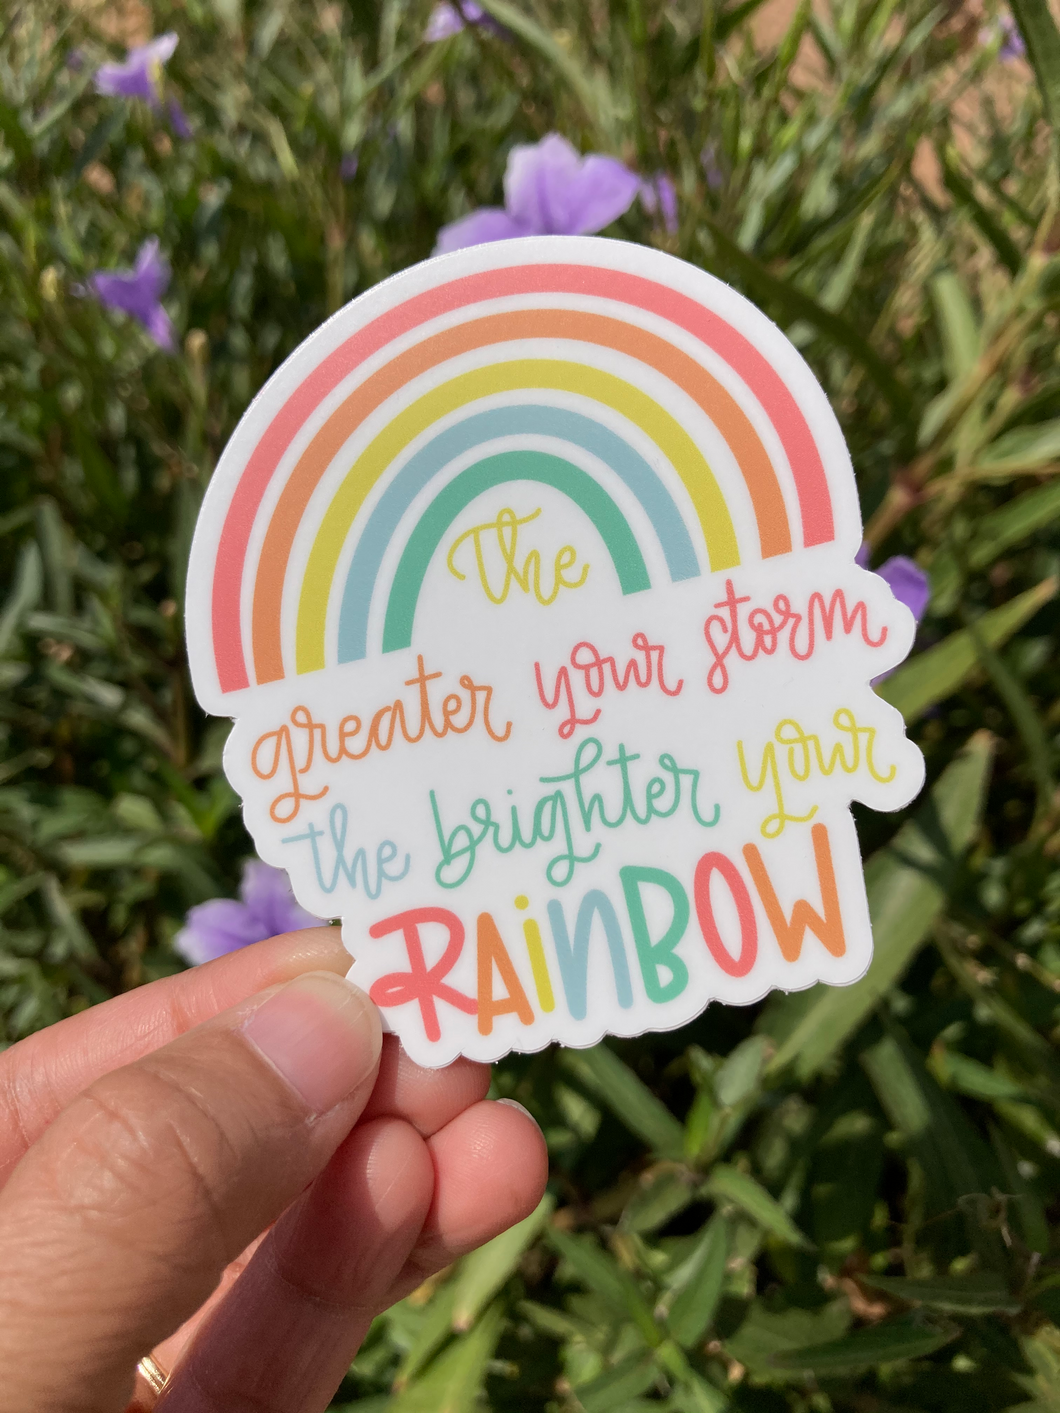 The greater your storm the brighter your rainbow - sticker